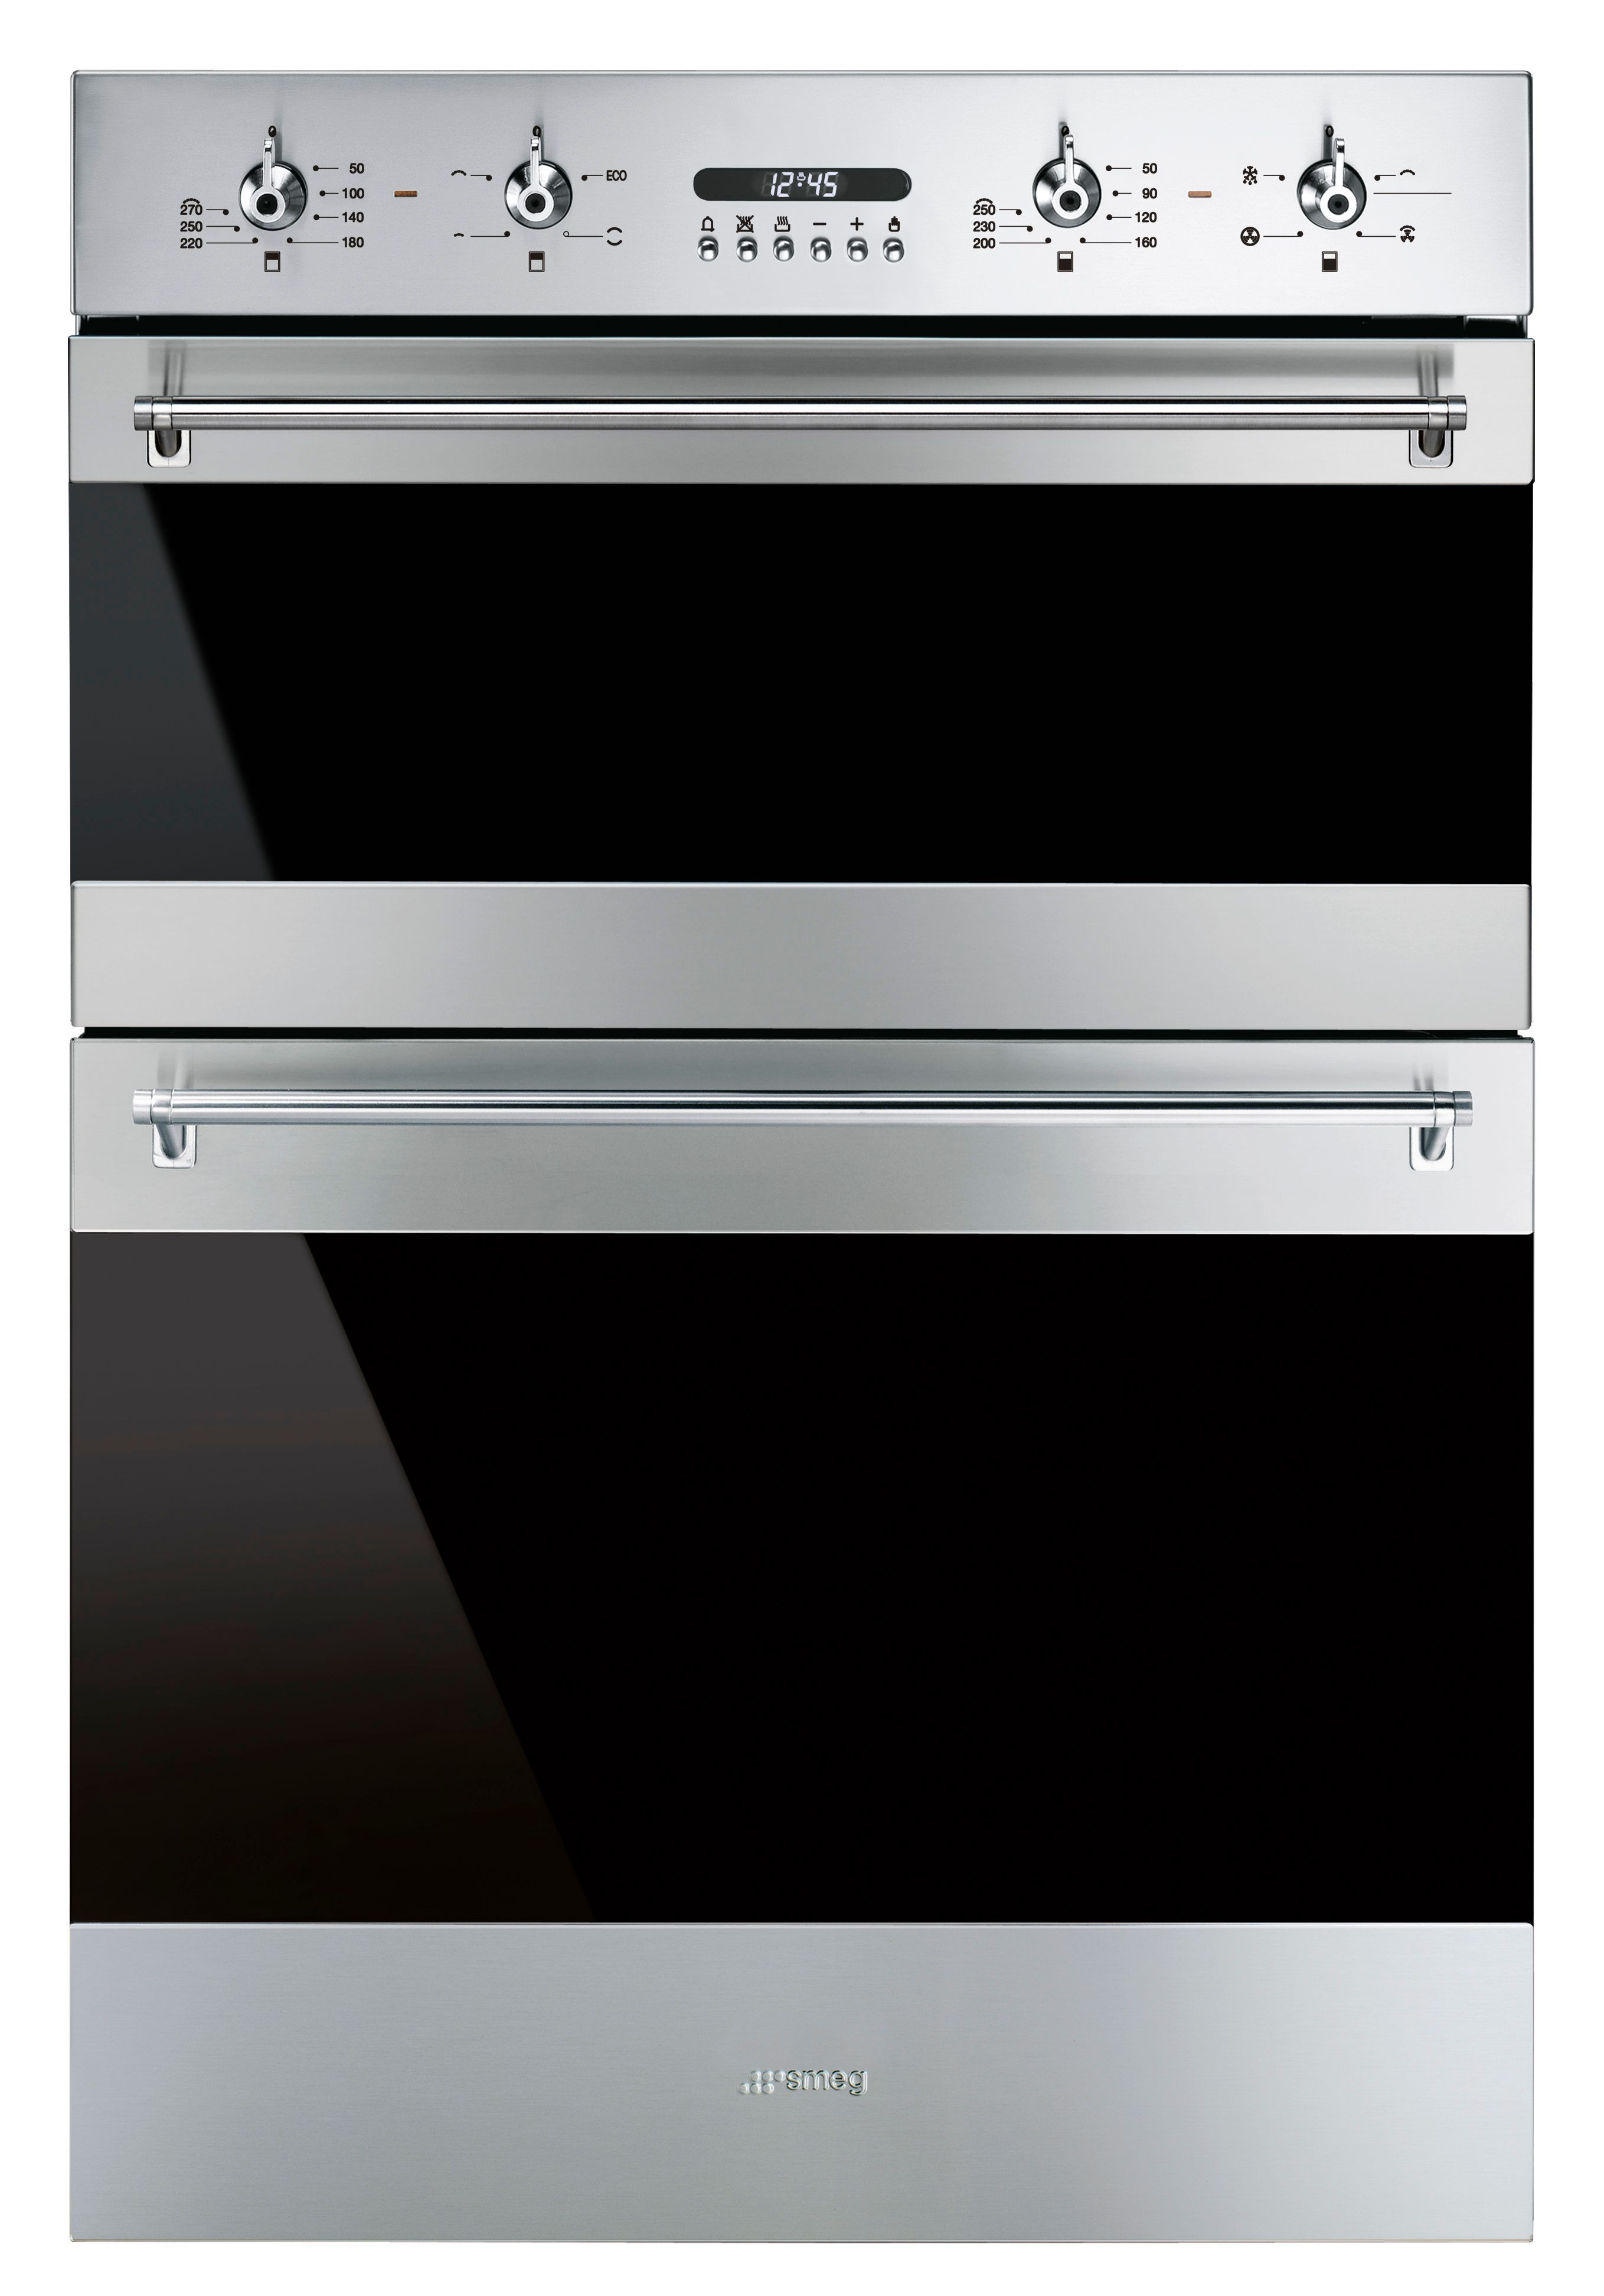 small resolution of smeg double oven wiring diagram oven stainless rh pinterest com design